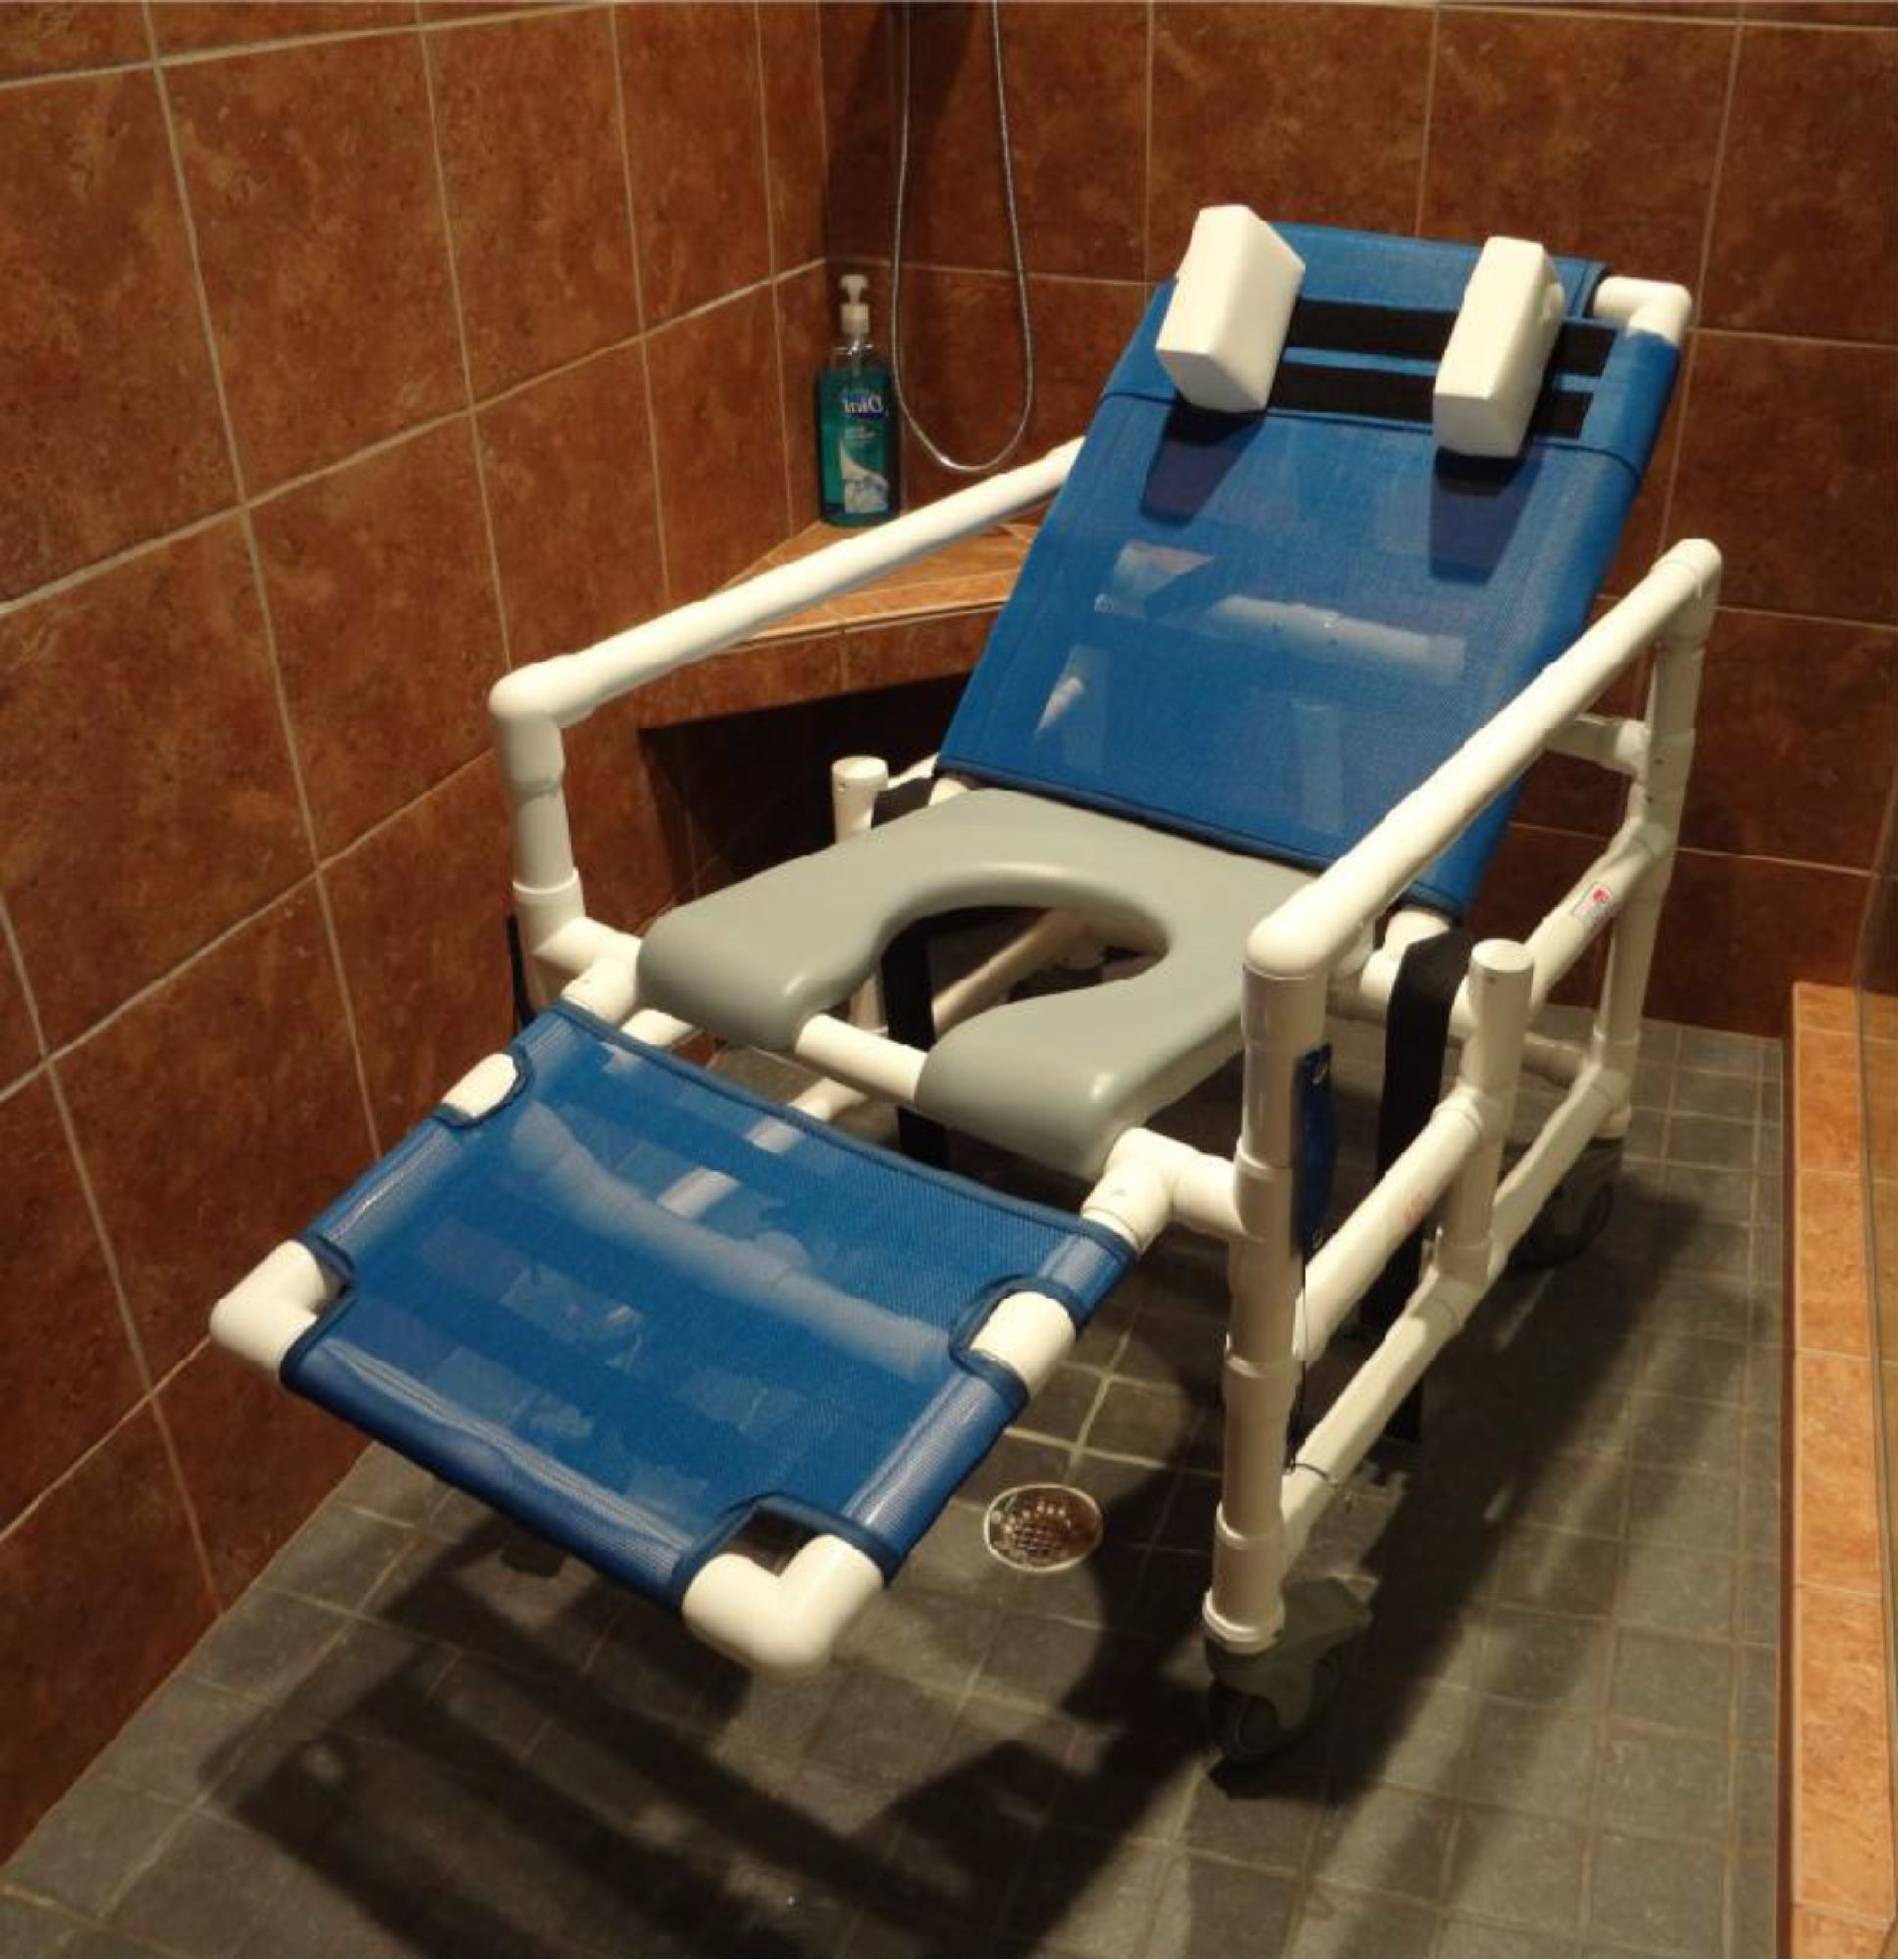 Reclining Shower Chair | bathroom/safety in 2018 | Pinterest ...